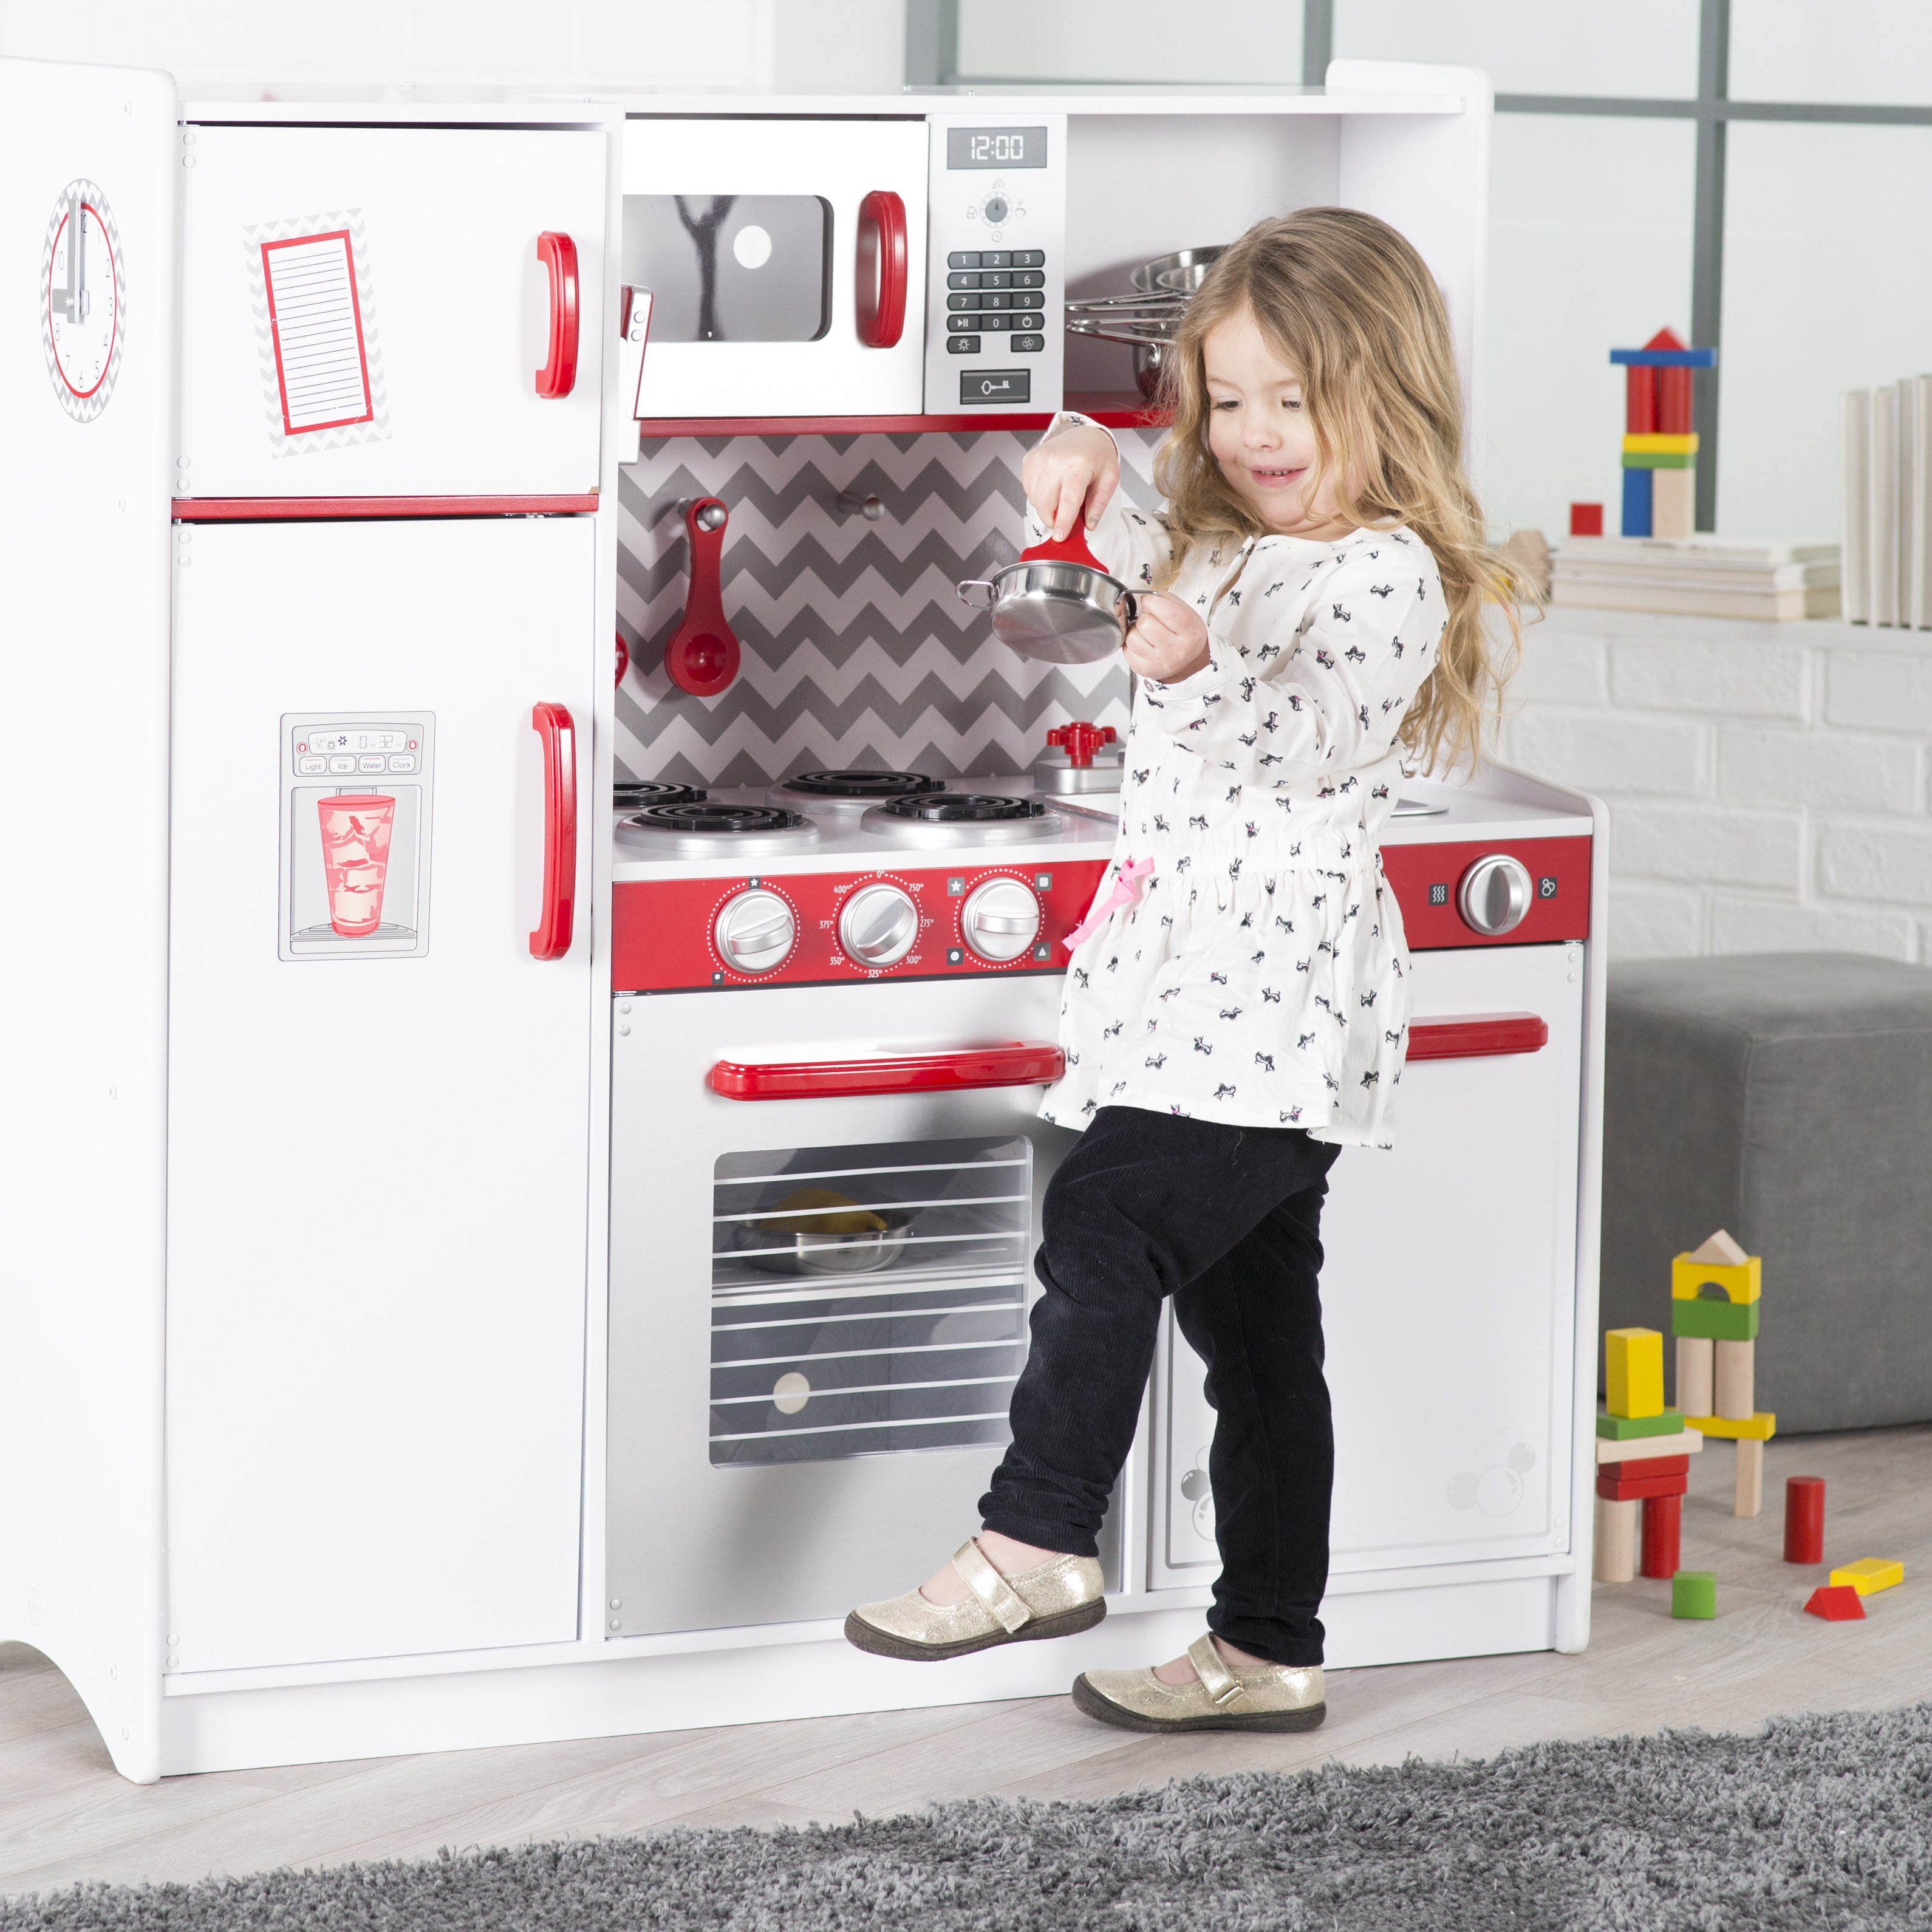 KidKraft Busy Bakin' Play Kitchen - 53342 - Walmart.com